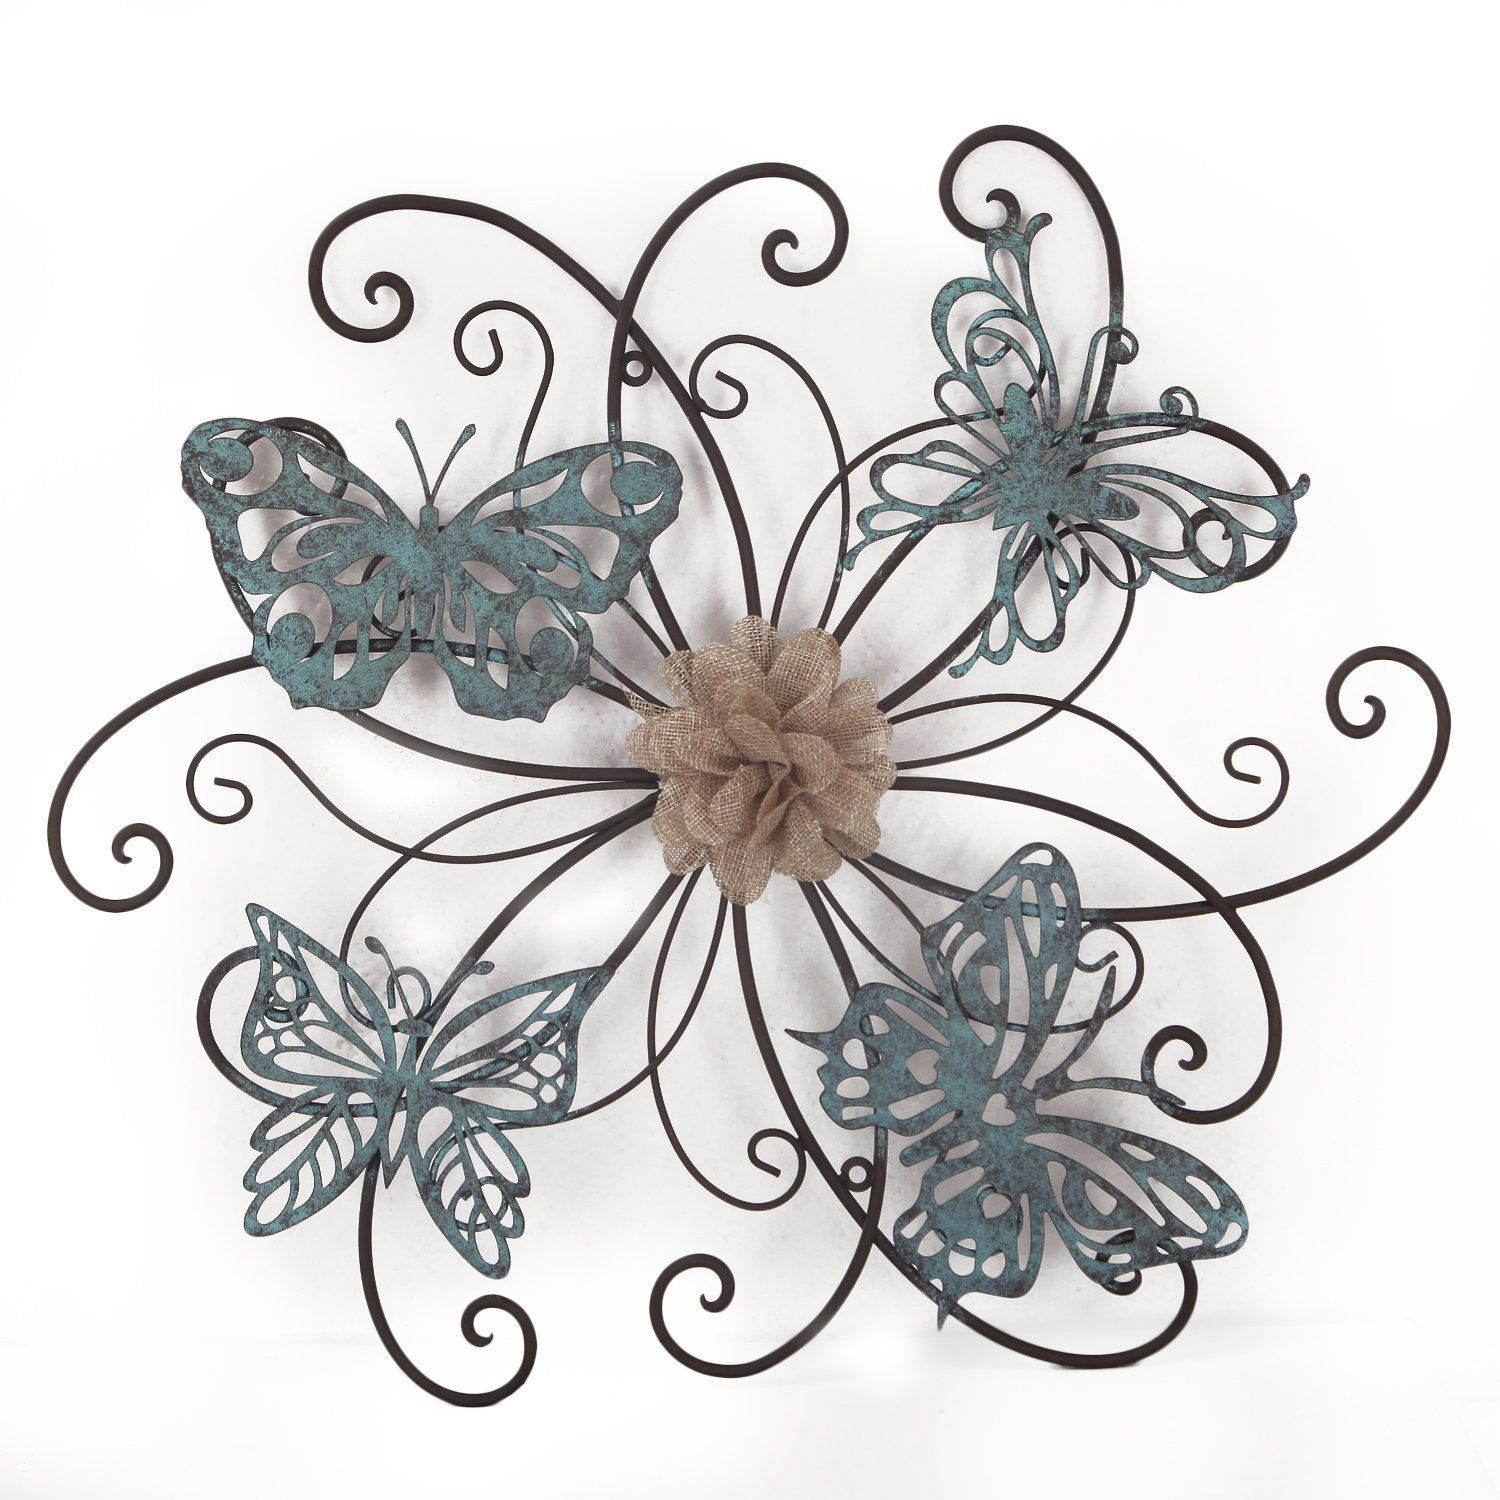 Flower Urban Design Metal Wall Decor Regarding Widely Used Adeco Flower And Butterfly Urban Design Metal (grey) Wall Decor For (View 2 of 20)